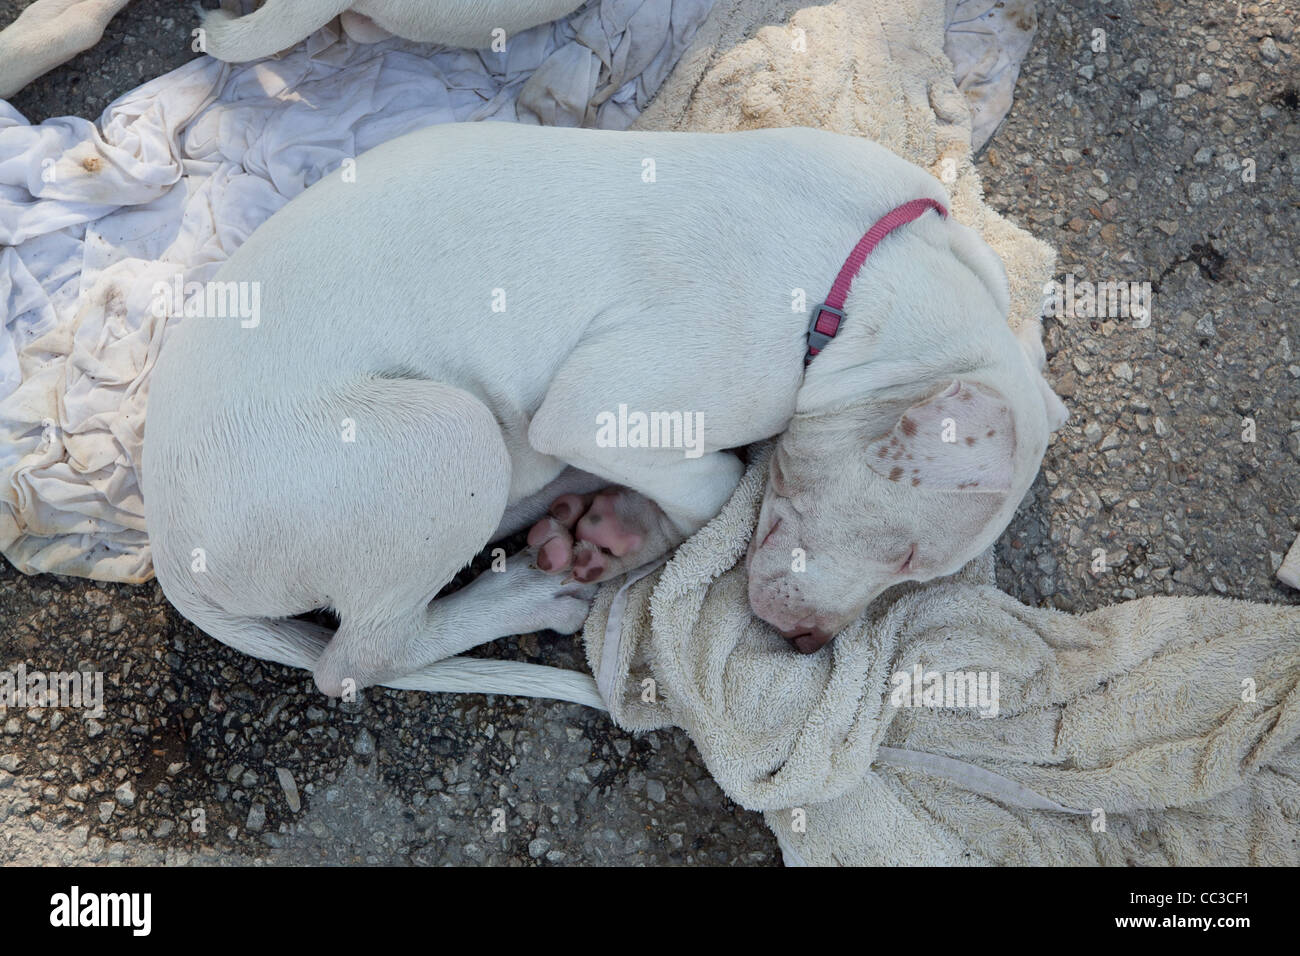 A sleeping female, white American pitbull puppy - Stock Image